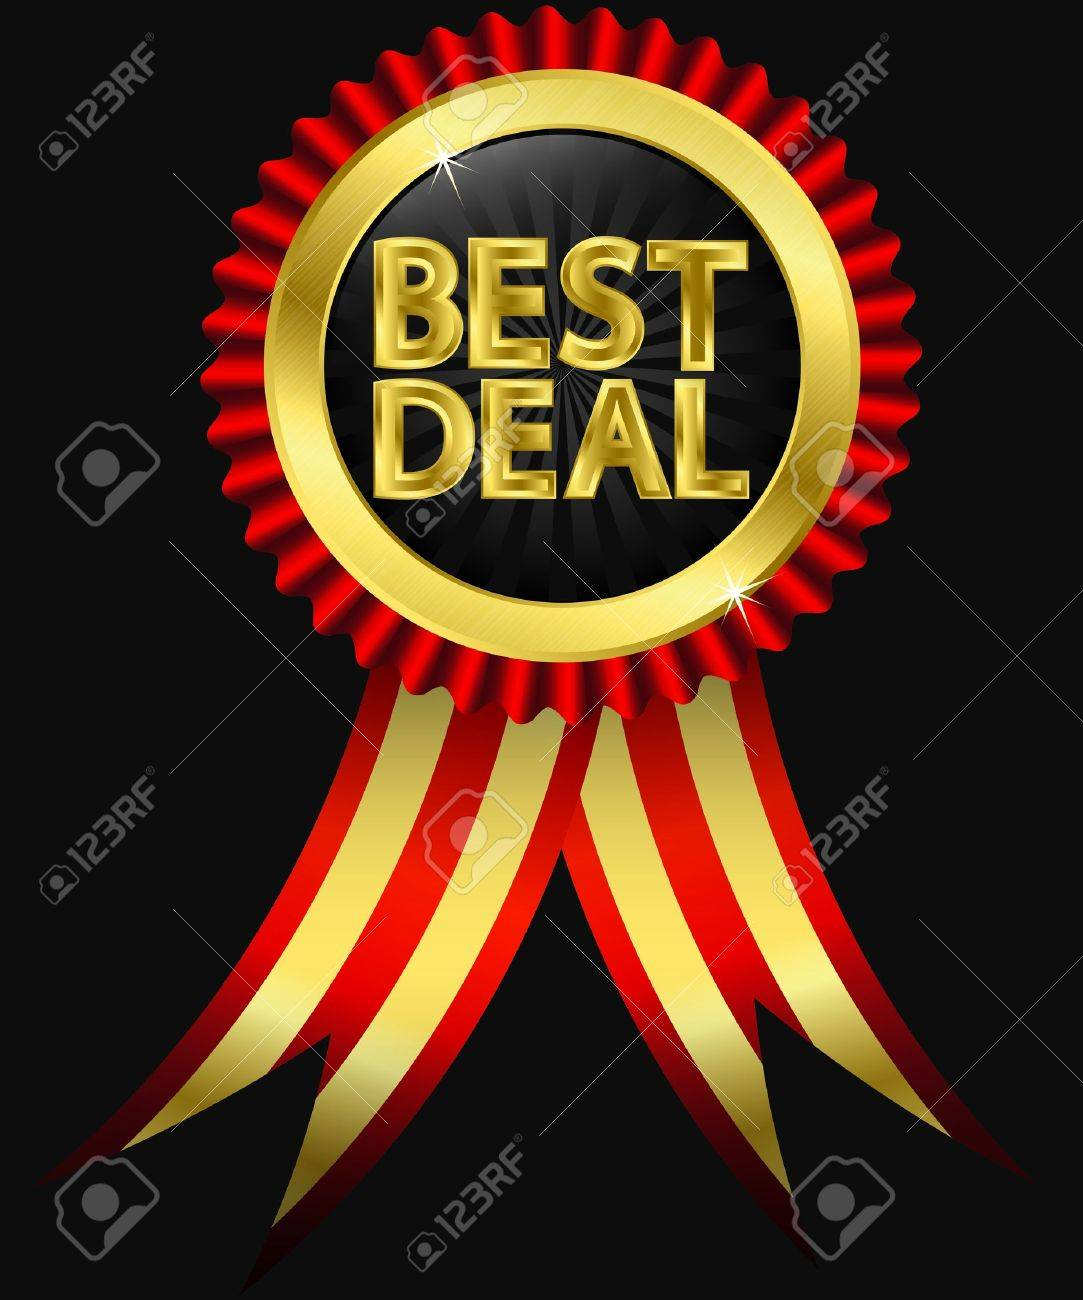 Best Deal Golden Label With Ribbons Royalty Free Cliparts, Vectors ...